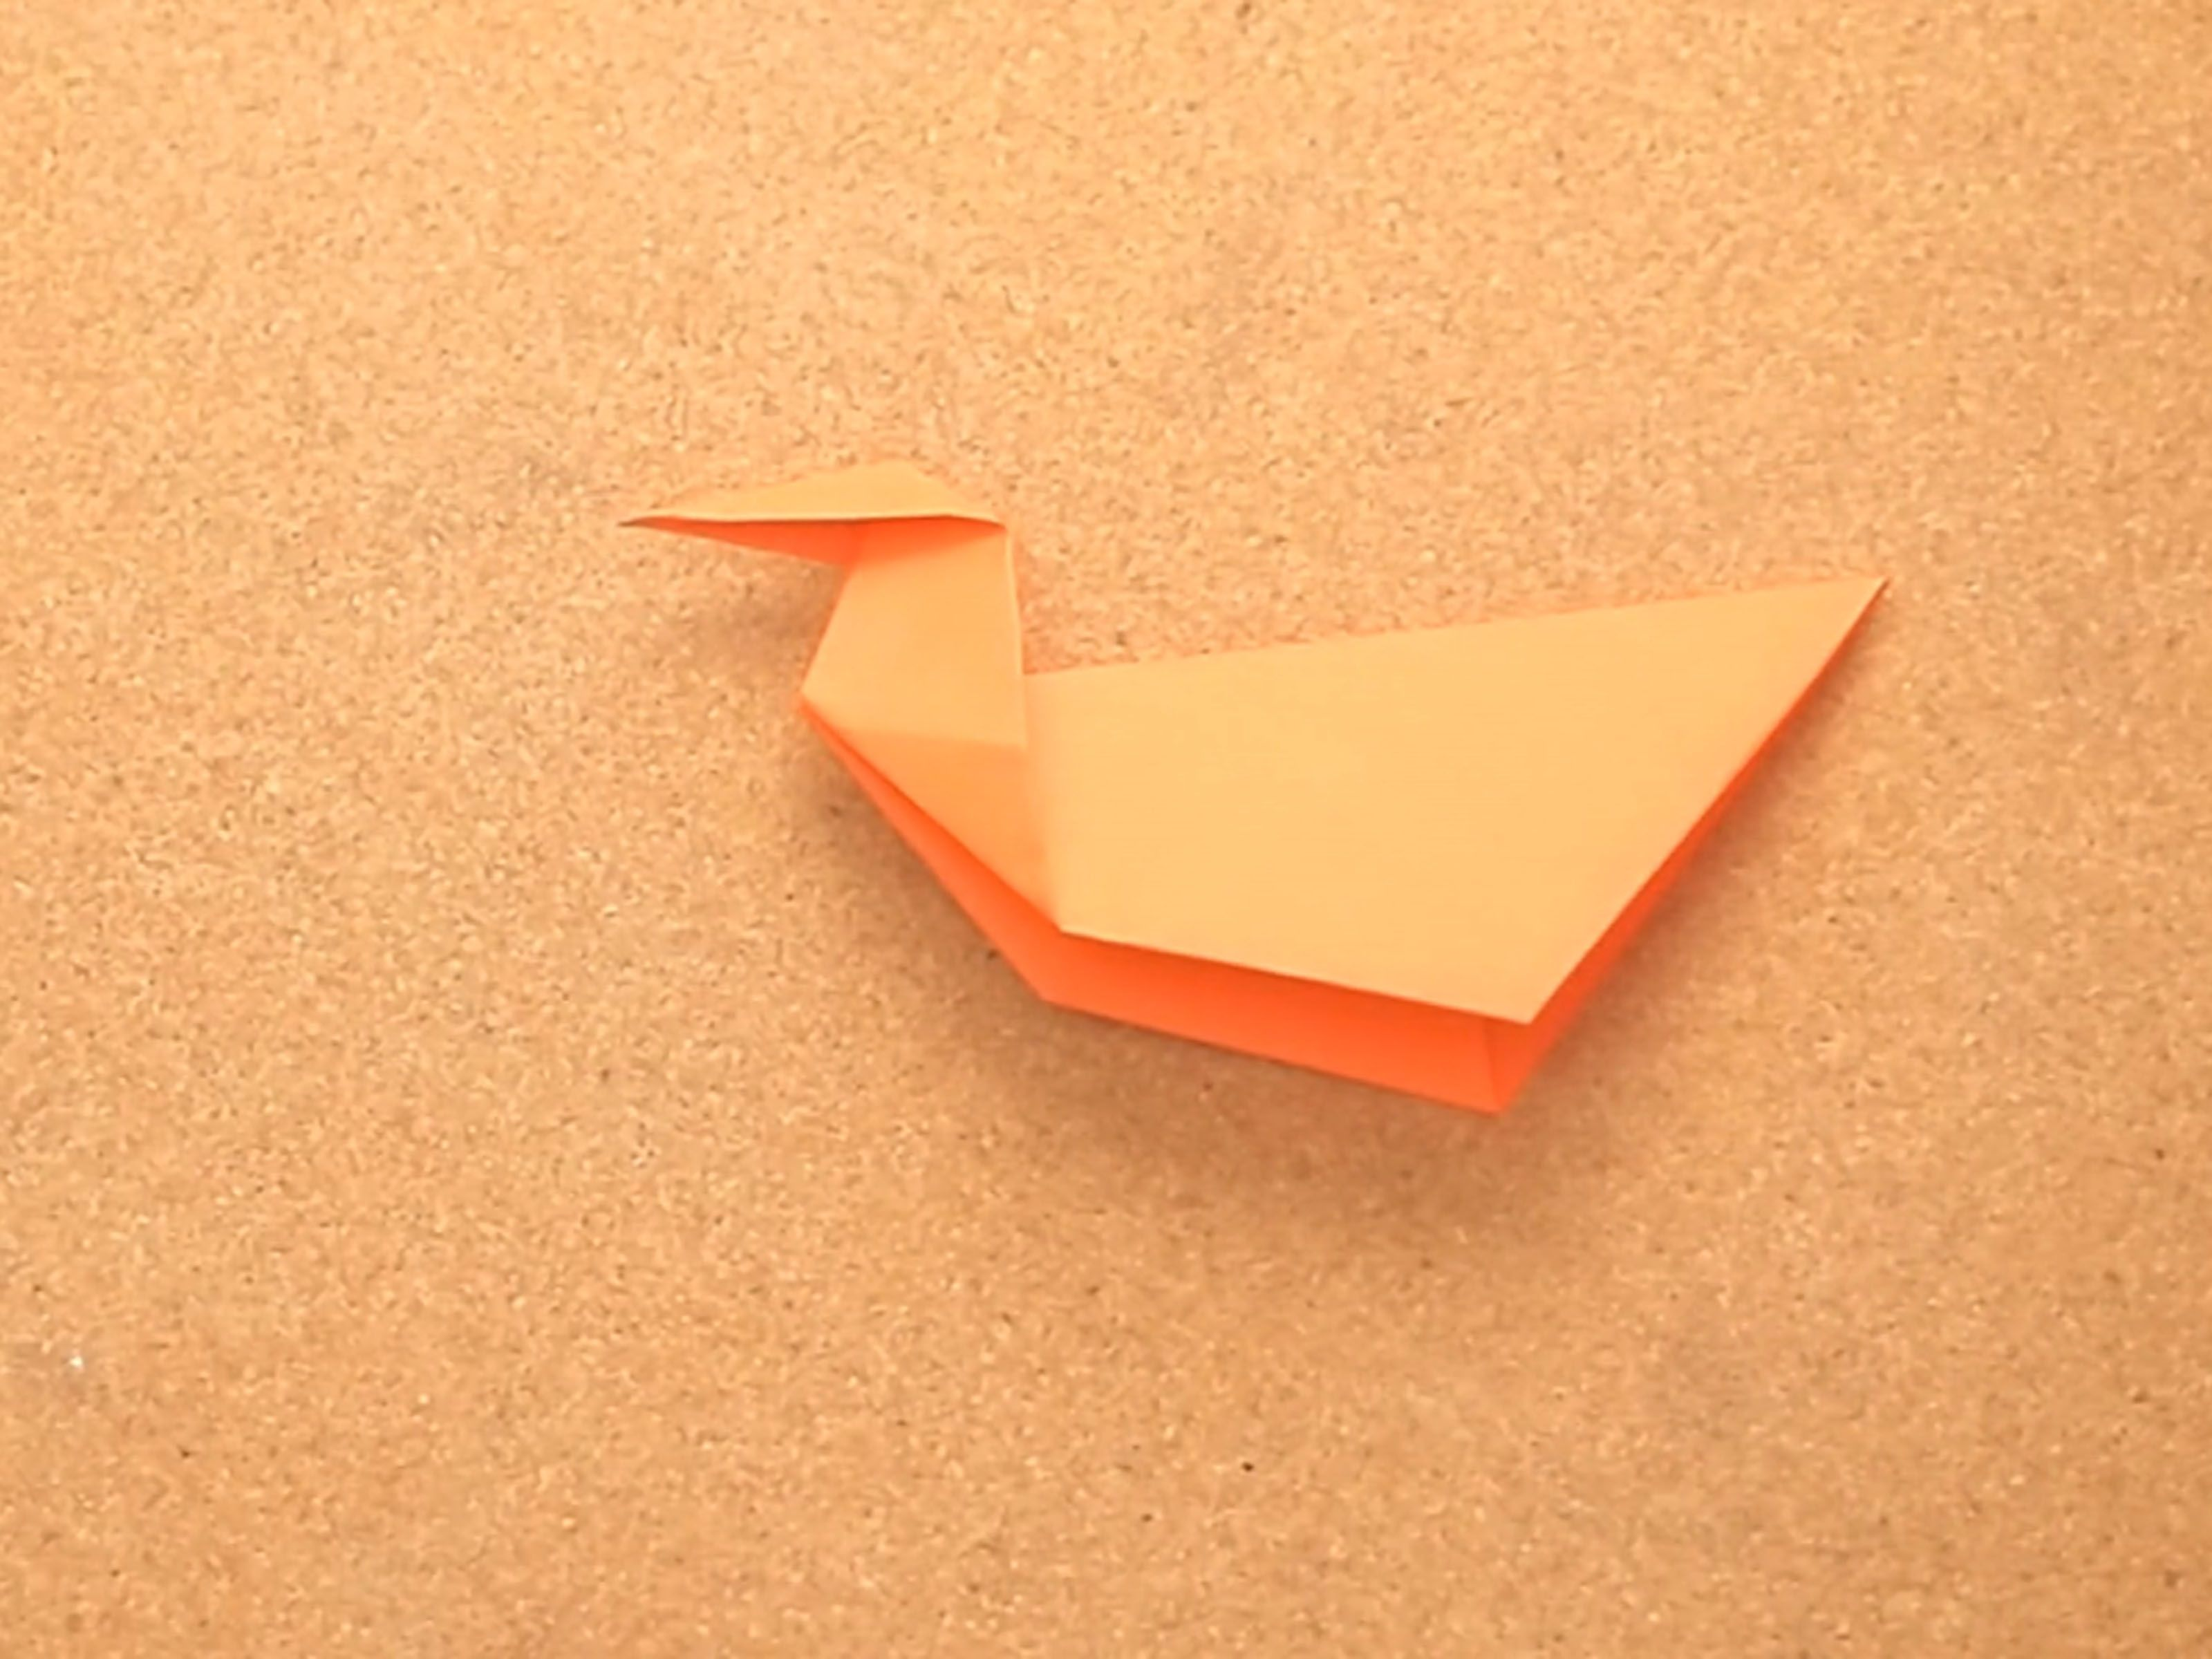 flapping bird | Flapping bird, Origami flapping bird, How to make ... | 2400x3200